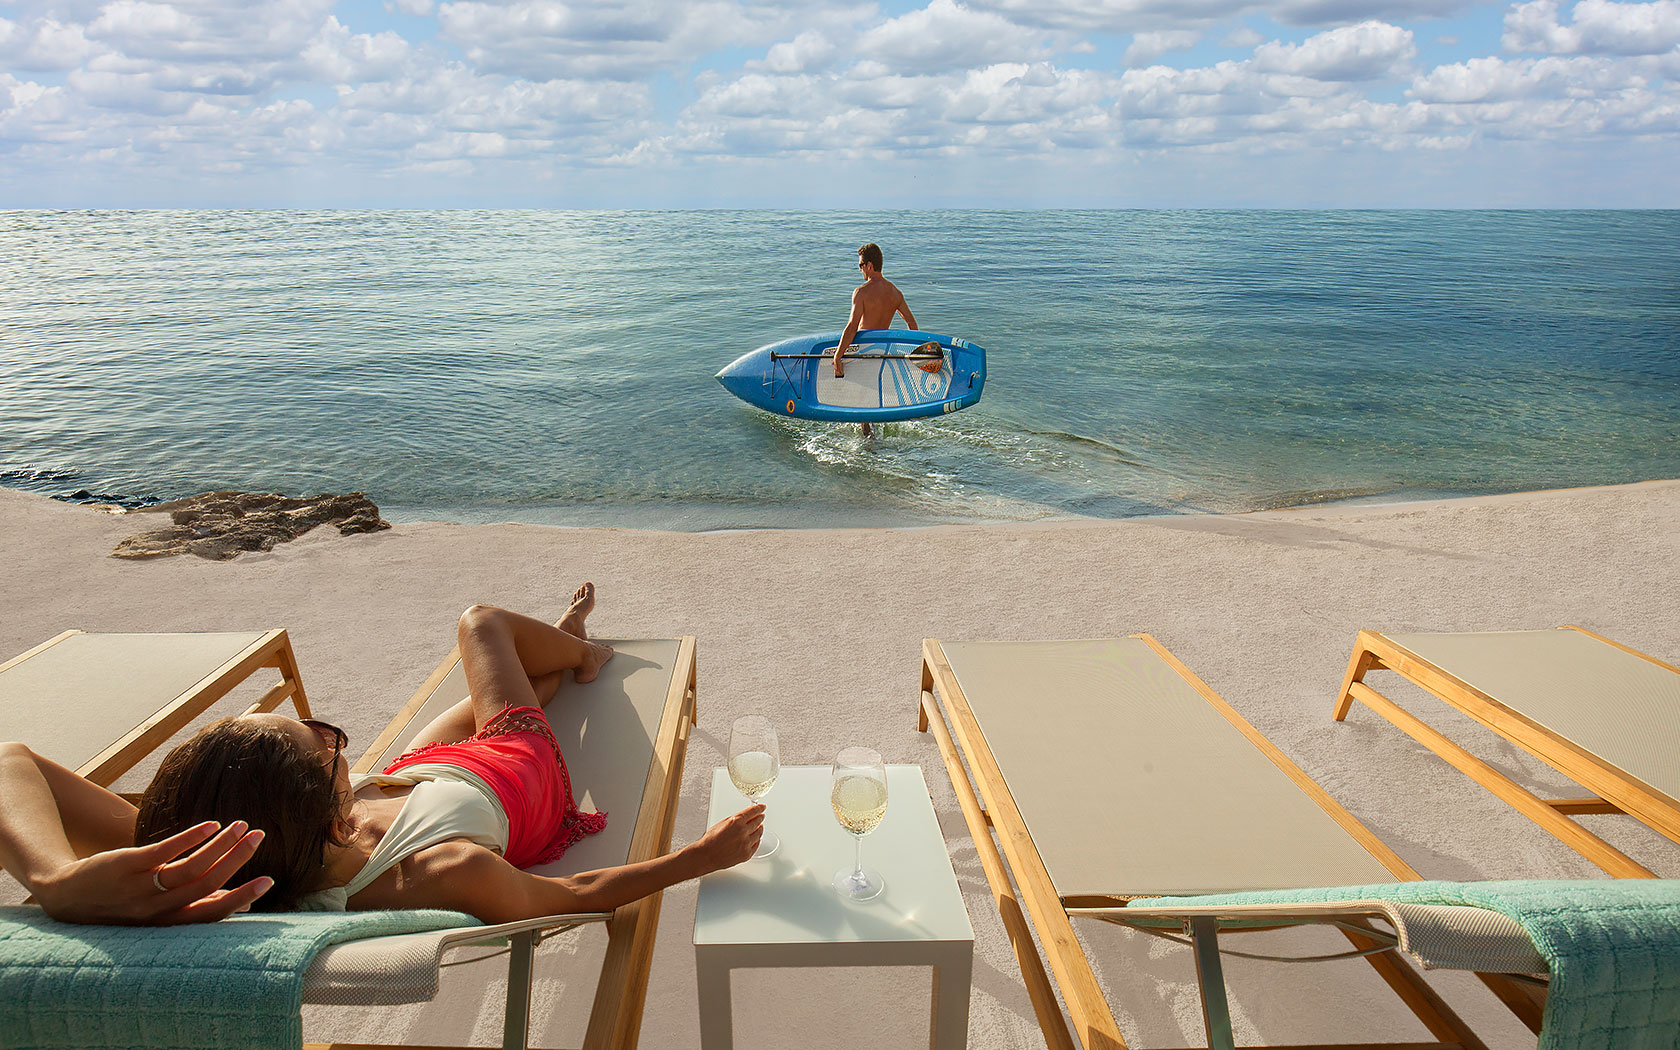 The Top 5 Reasons To Spend Valentine's Day In The Bahamas